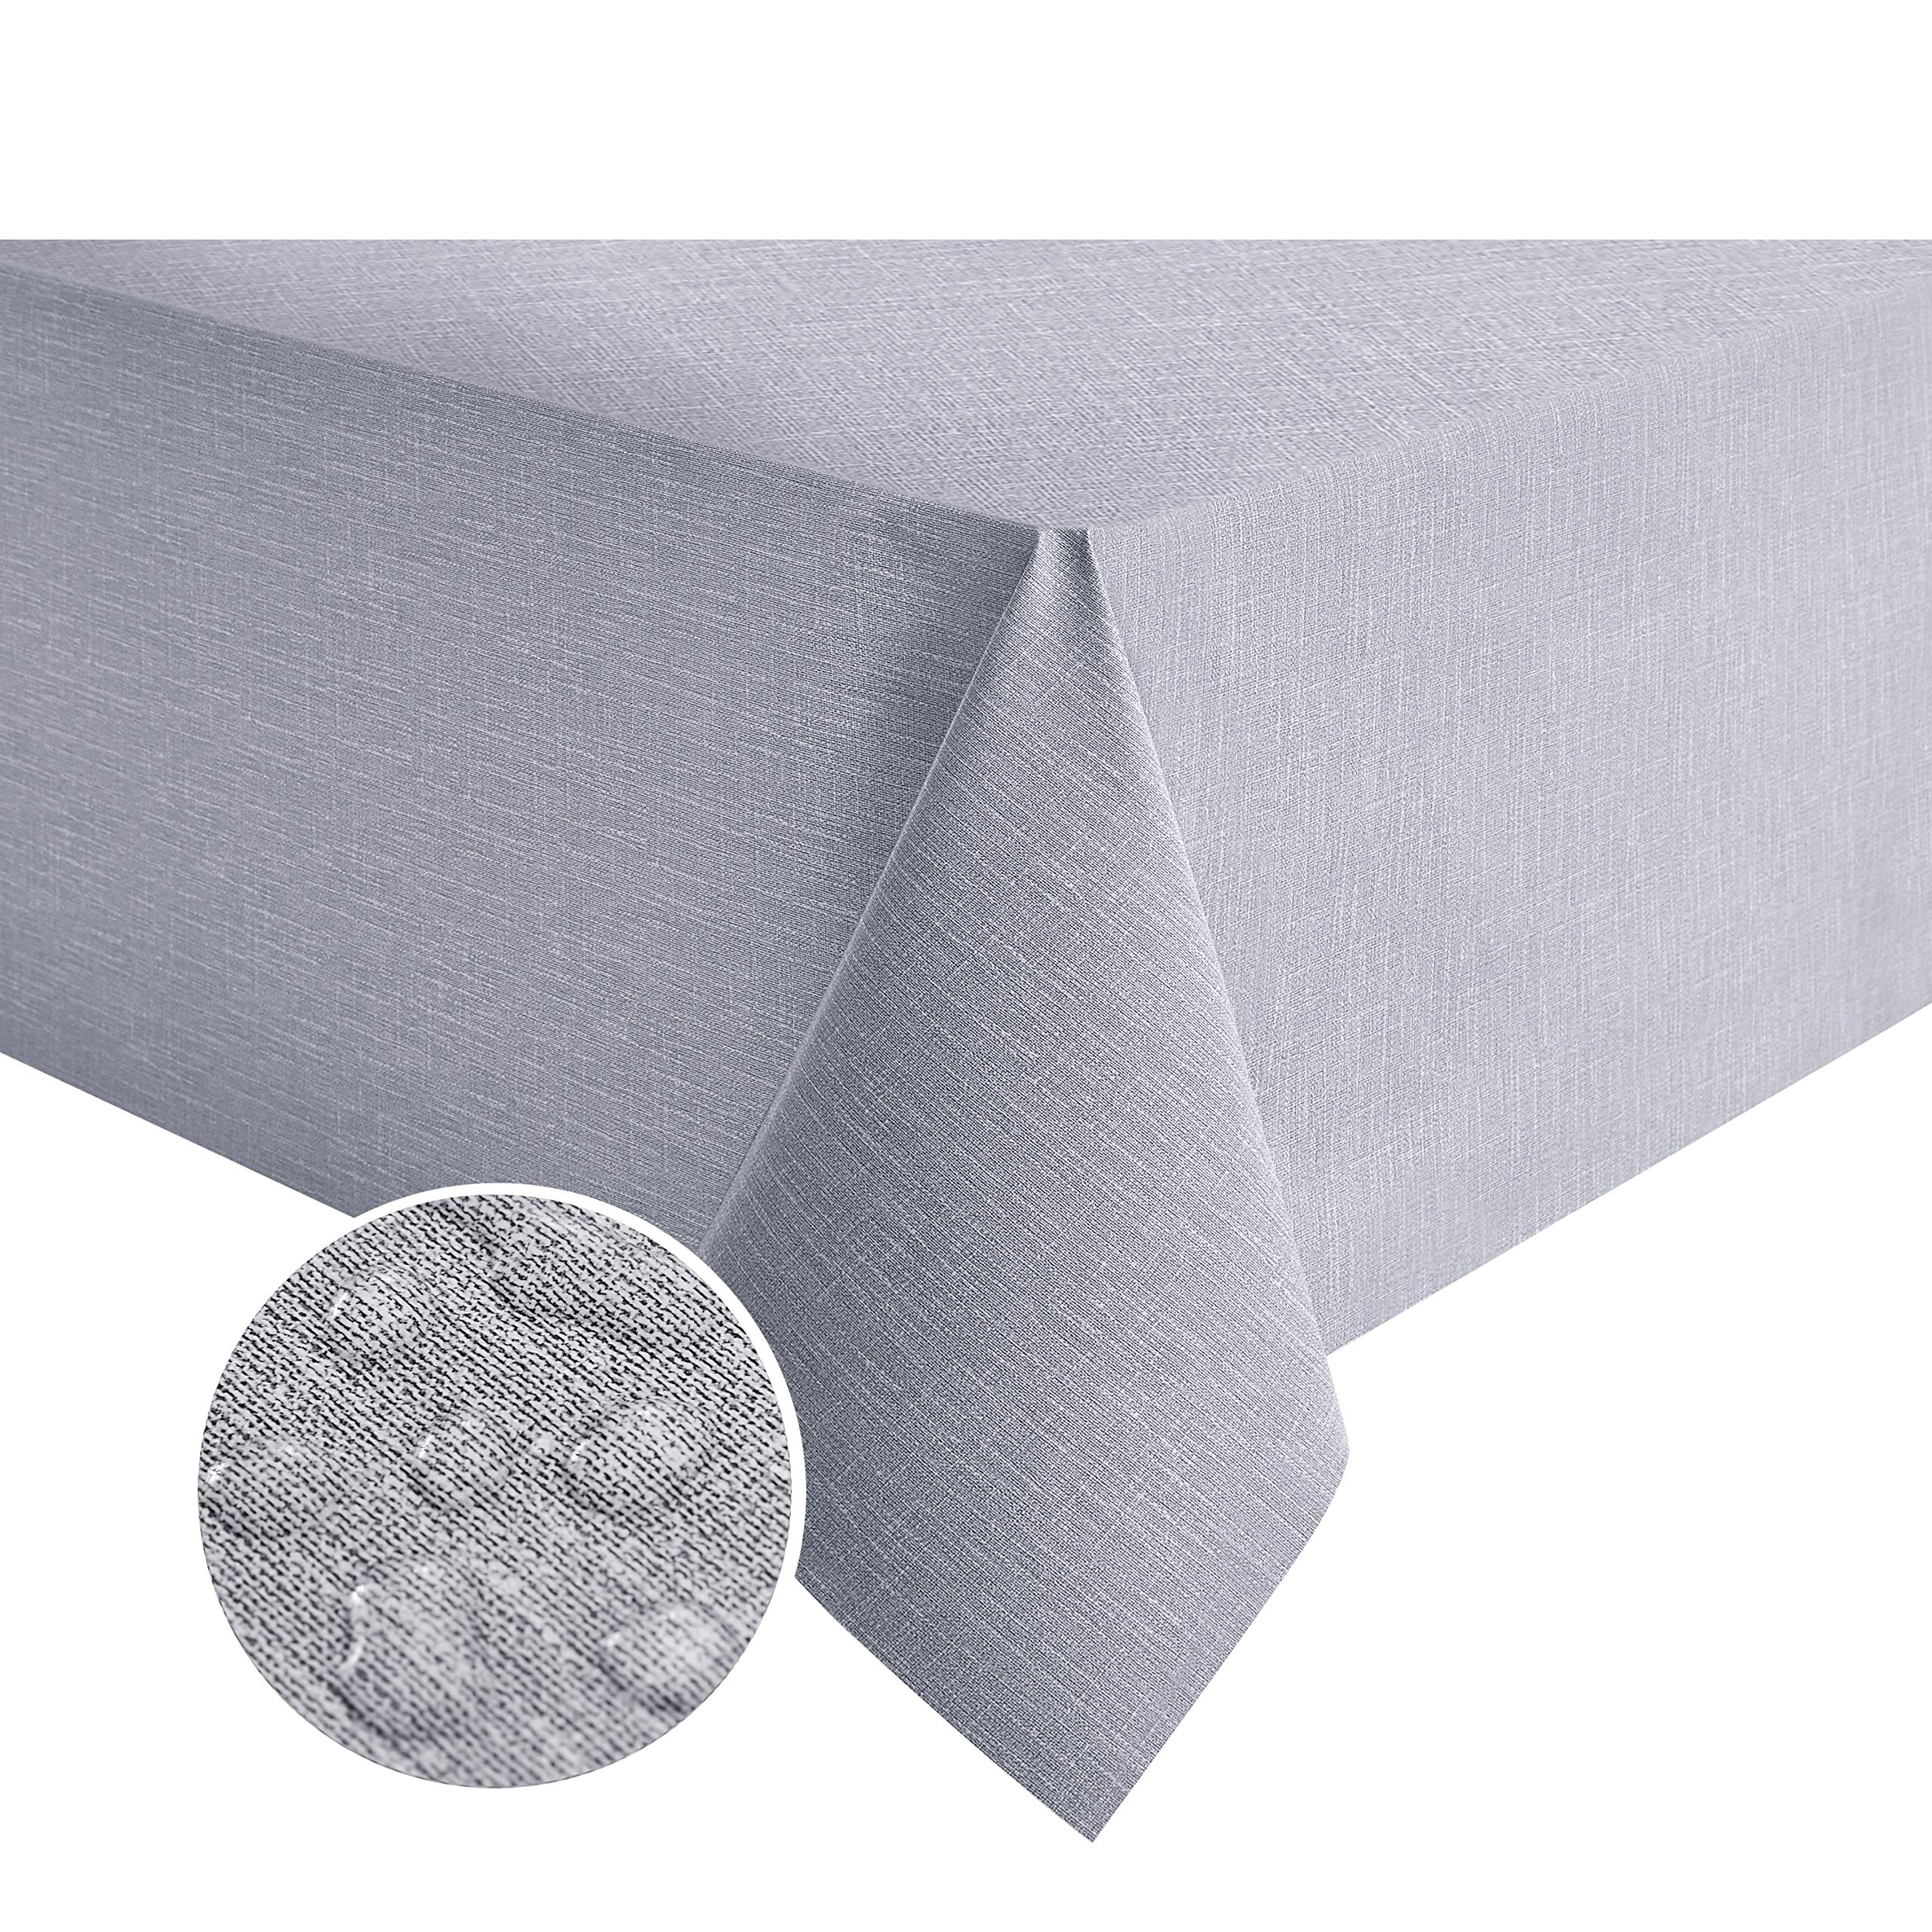 NLMUVW Square Vinyl Tablecloth 100% Waterproof Oil Proof Spill Proof PVC Table Cloth Wipe Clean Table Cover for Kitchen Dining Picnic, 54 x 54 inch, Grey